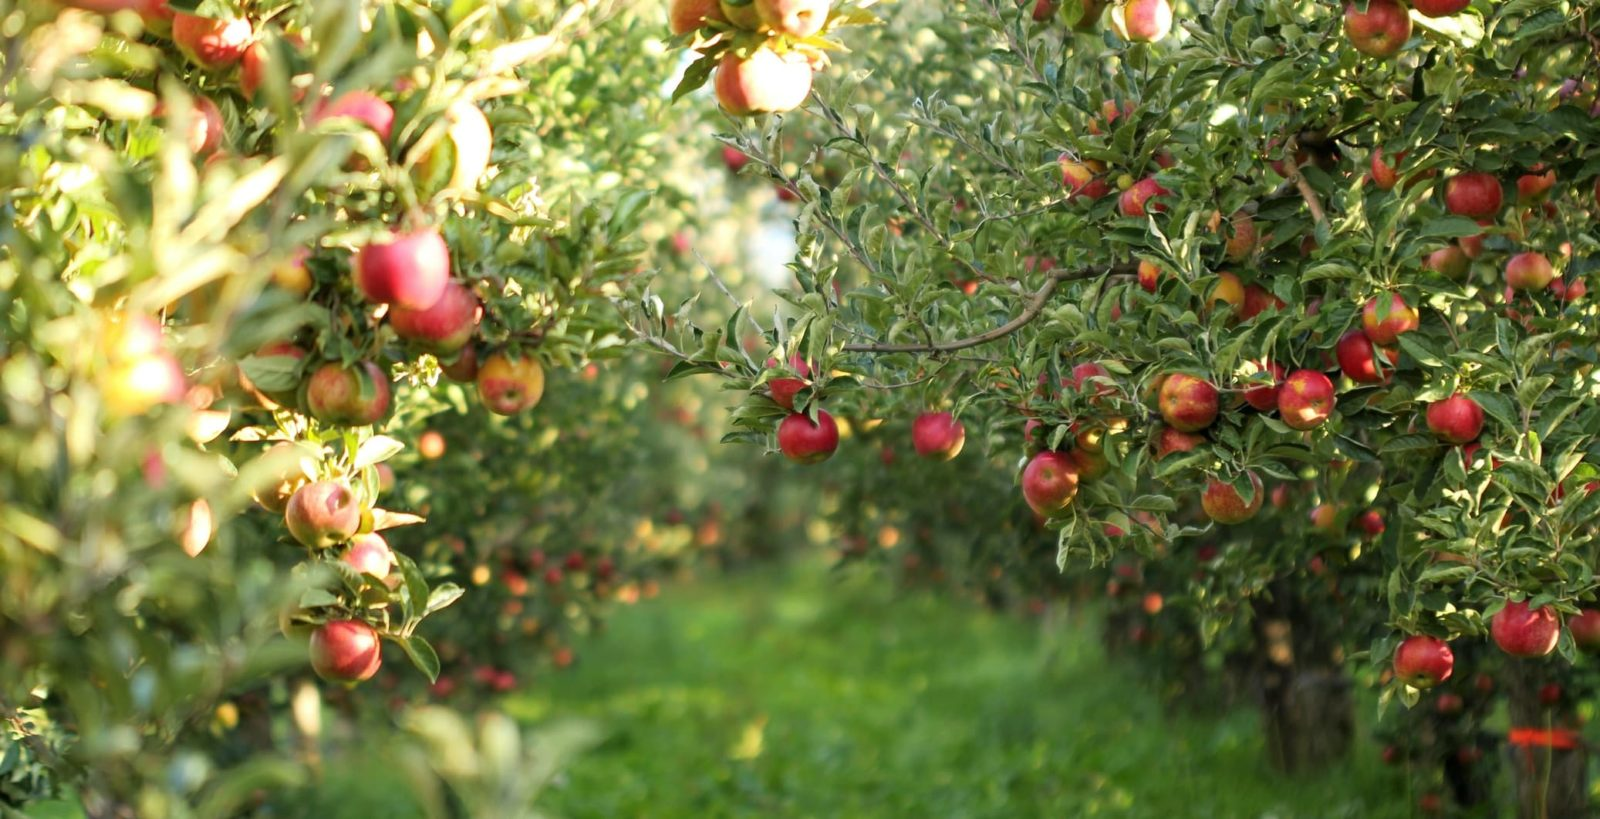 an apple tree with fruits in an orchard